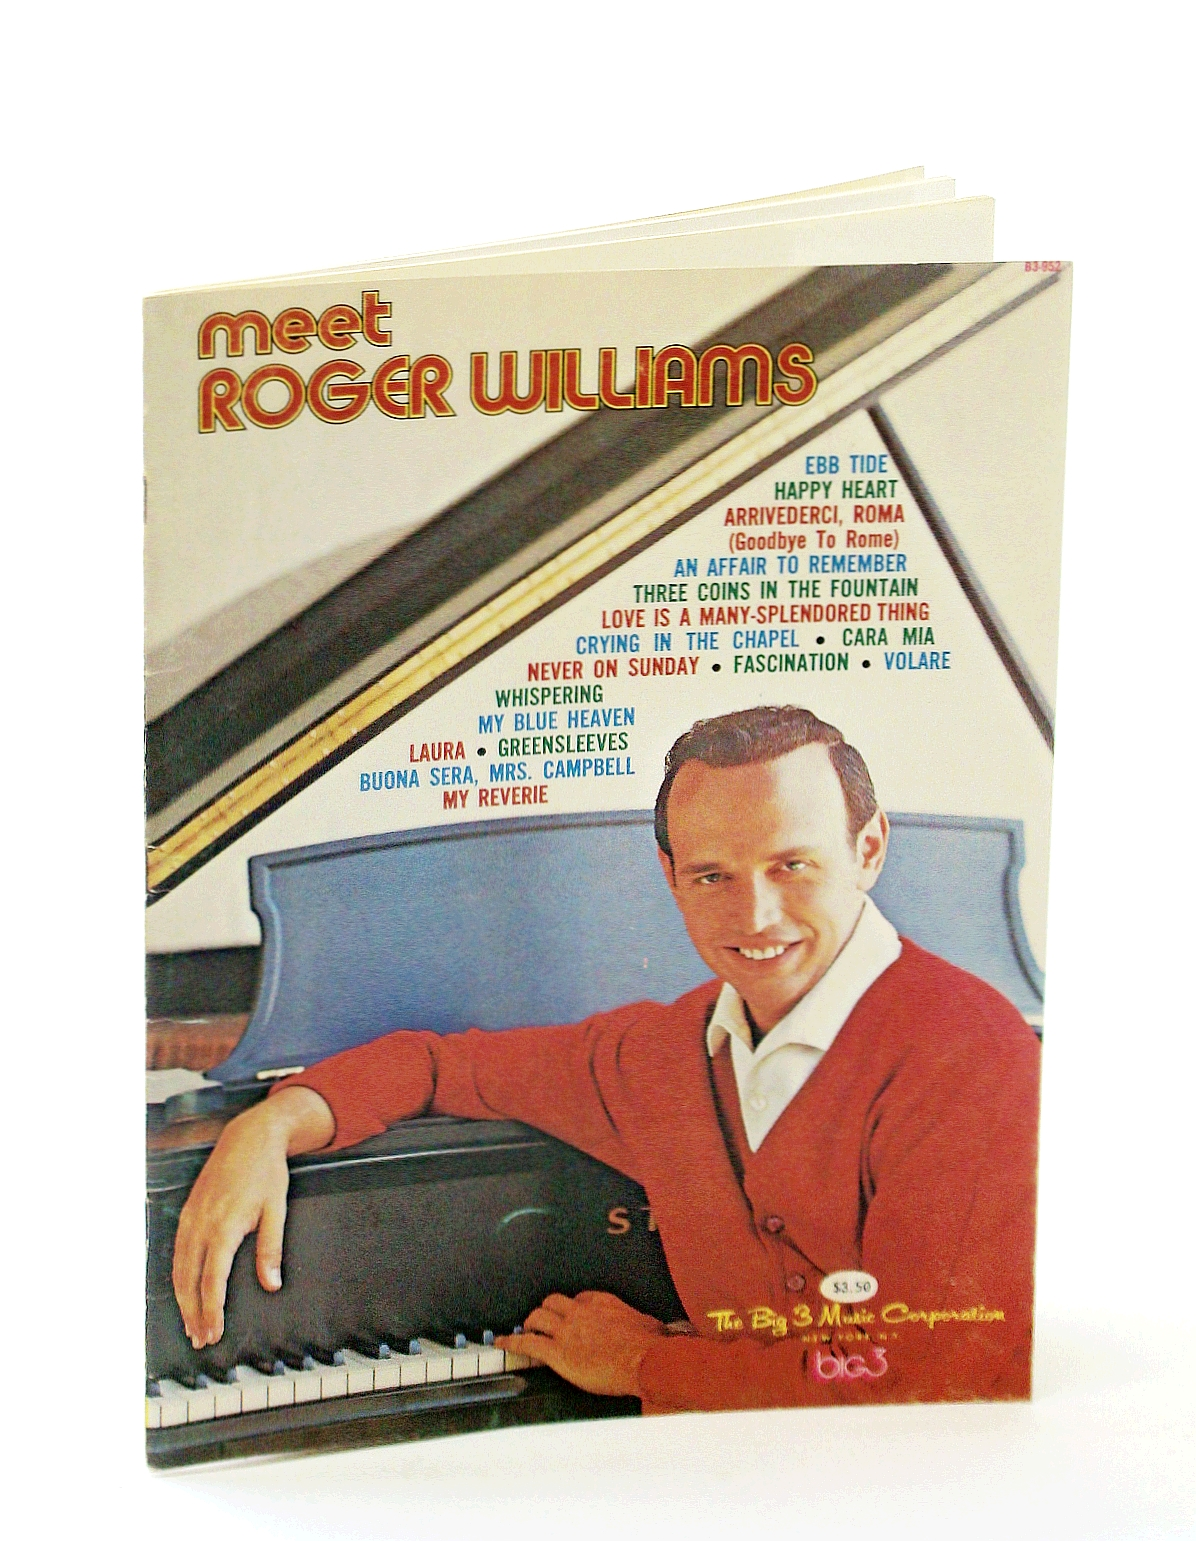 Image for Meet Roger Williams: Piano Arrangements by Roger Williams